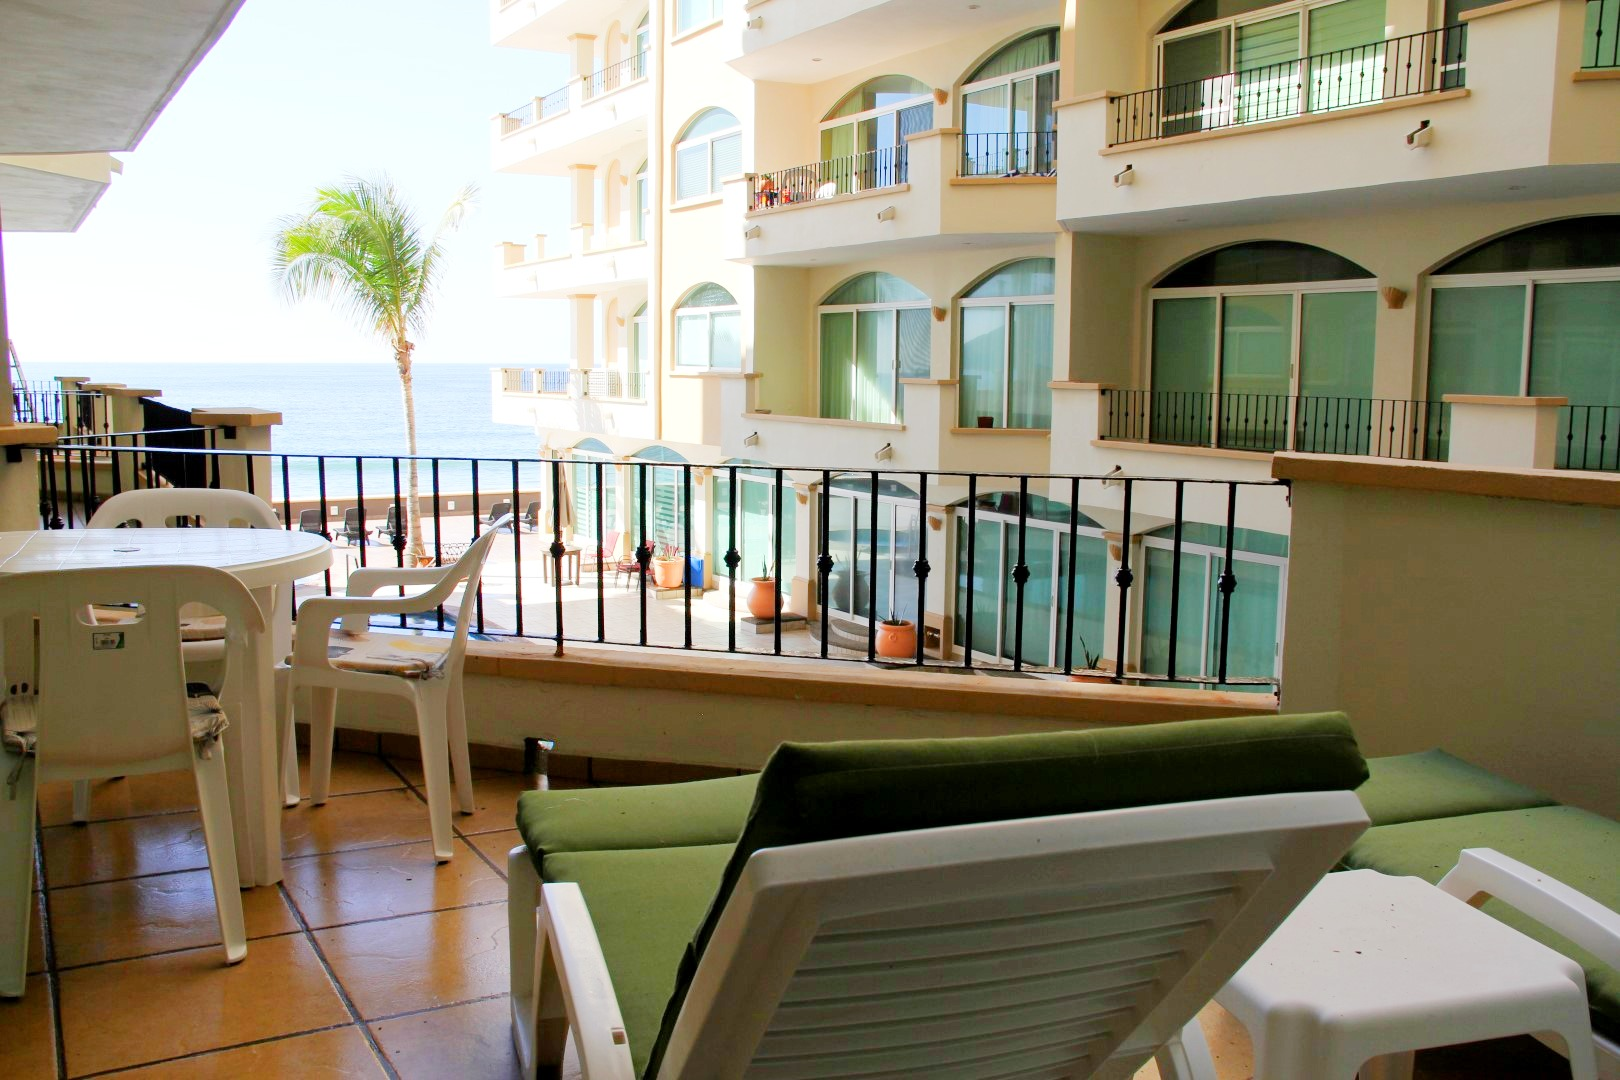 Loungers with a view on private terrace.